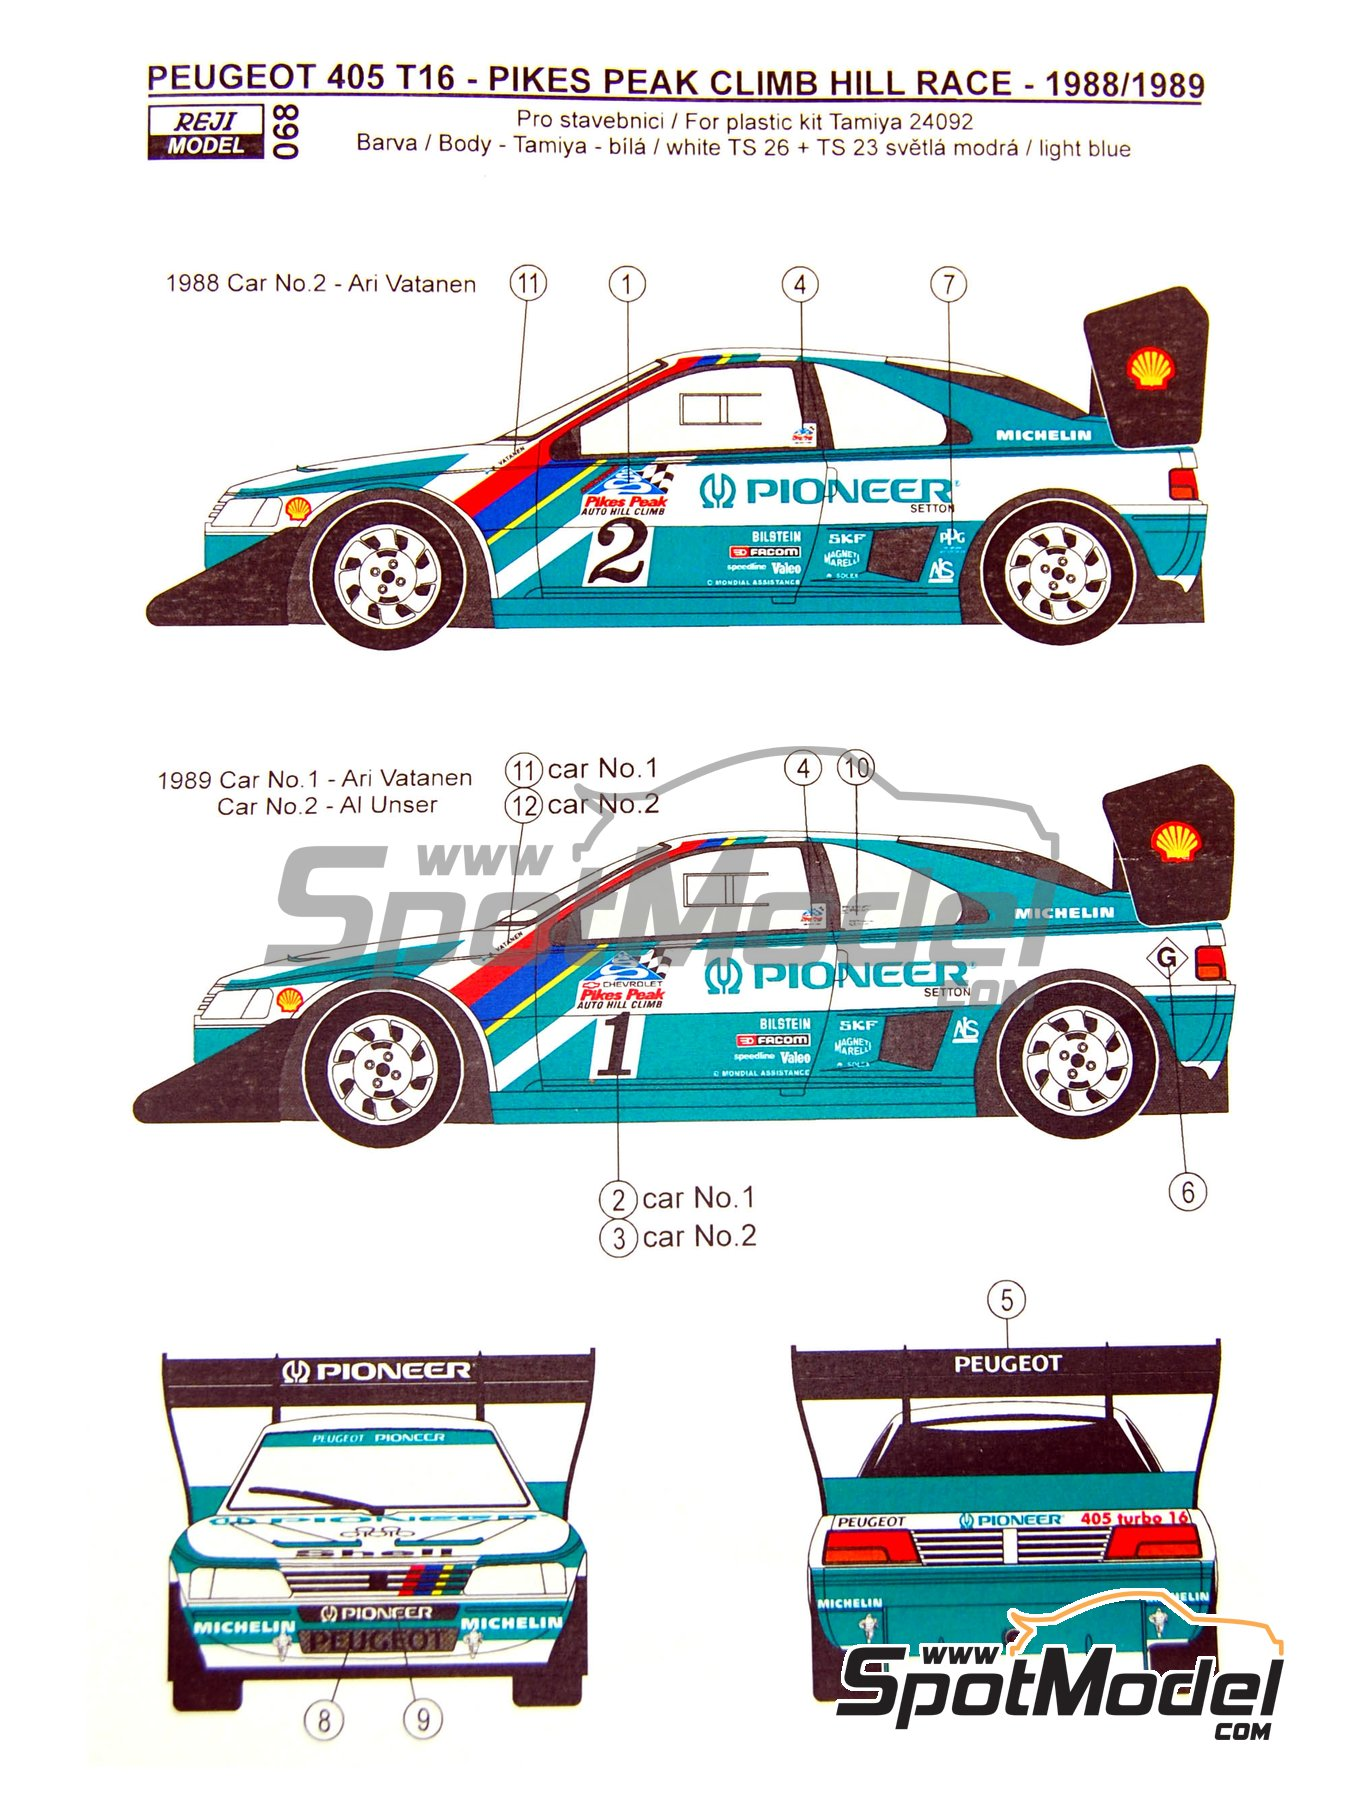 Peugeot 405 T16 Pioneer - Pikes Peak Climb Hill Race 1988 and 1989 | Marking / livery in 1/24 scale manufactured by Reji Model (ref. REJI-068) image